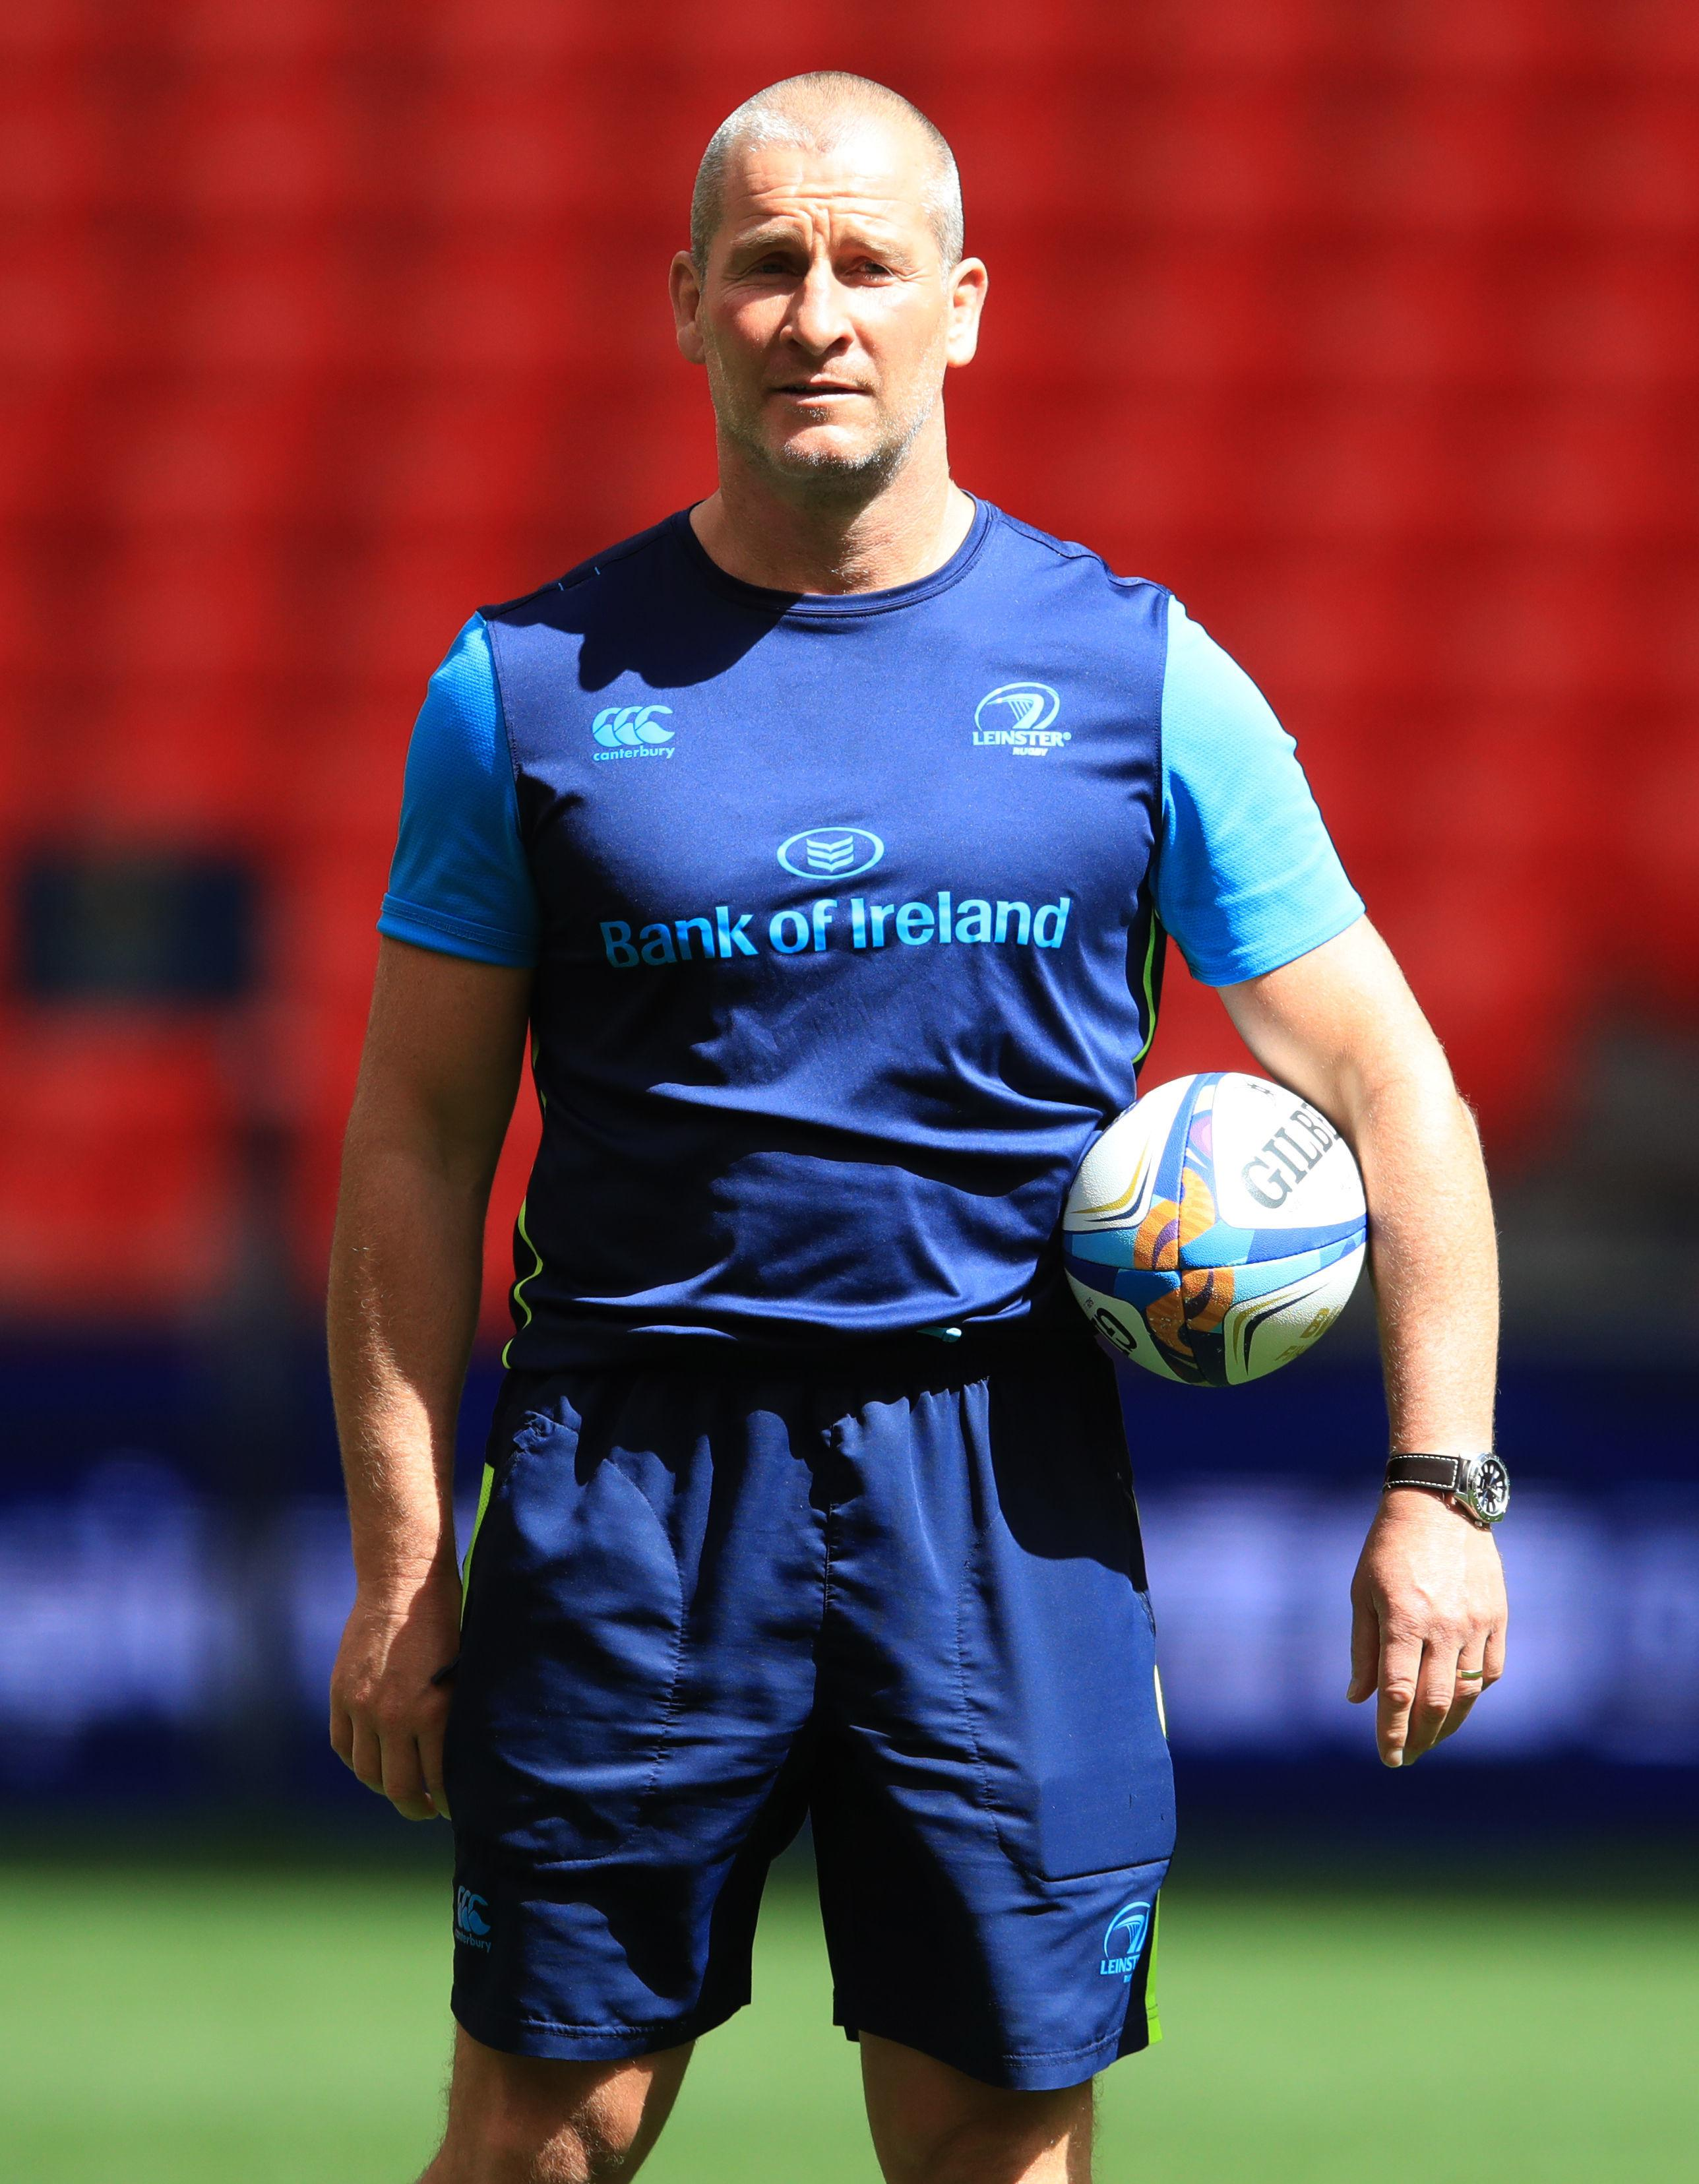 Stuart Lancaster has bounced back from his England World Cup nightmare with Leinster